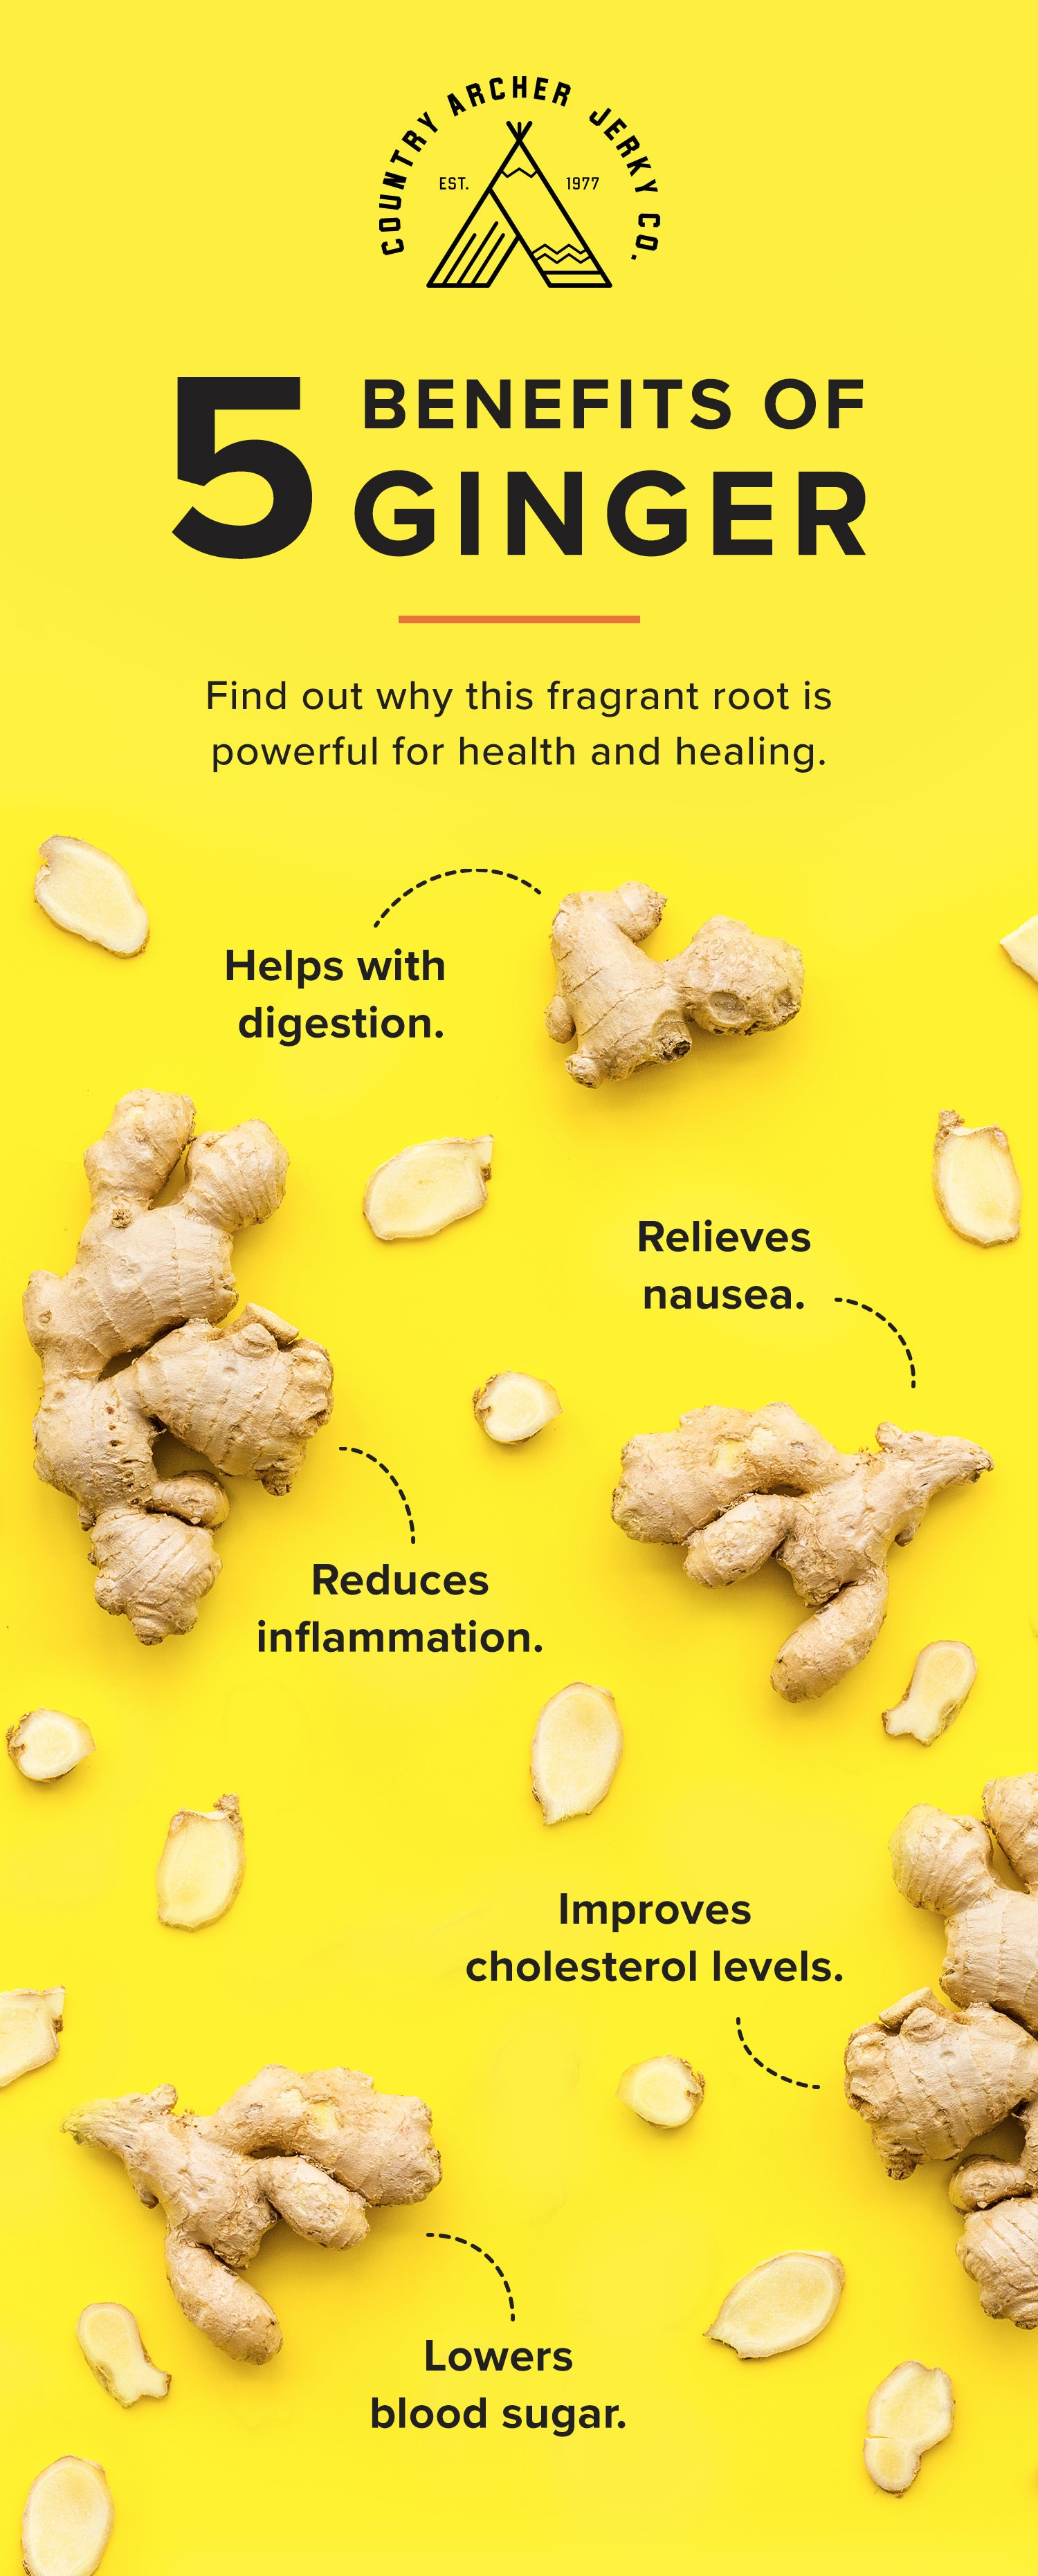 infographic for 5 benefits of ginger